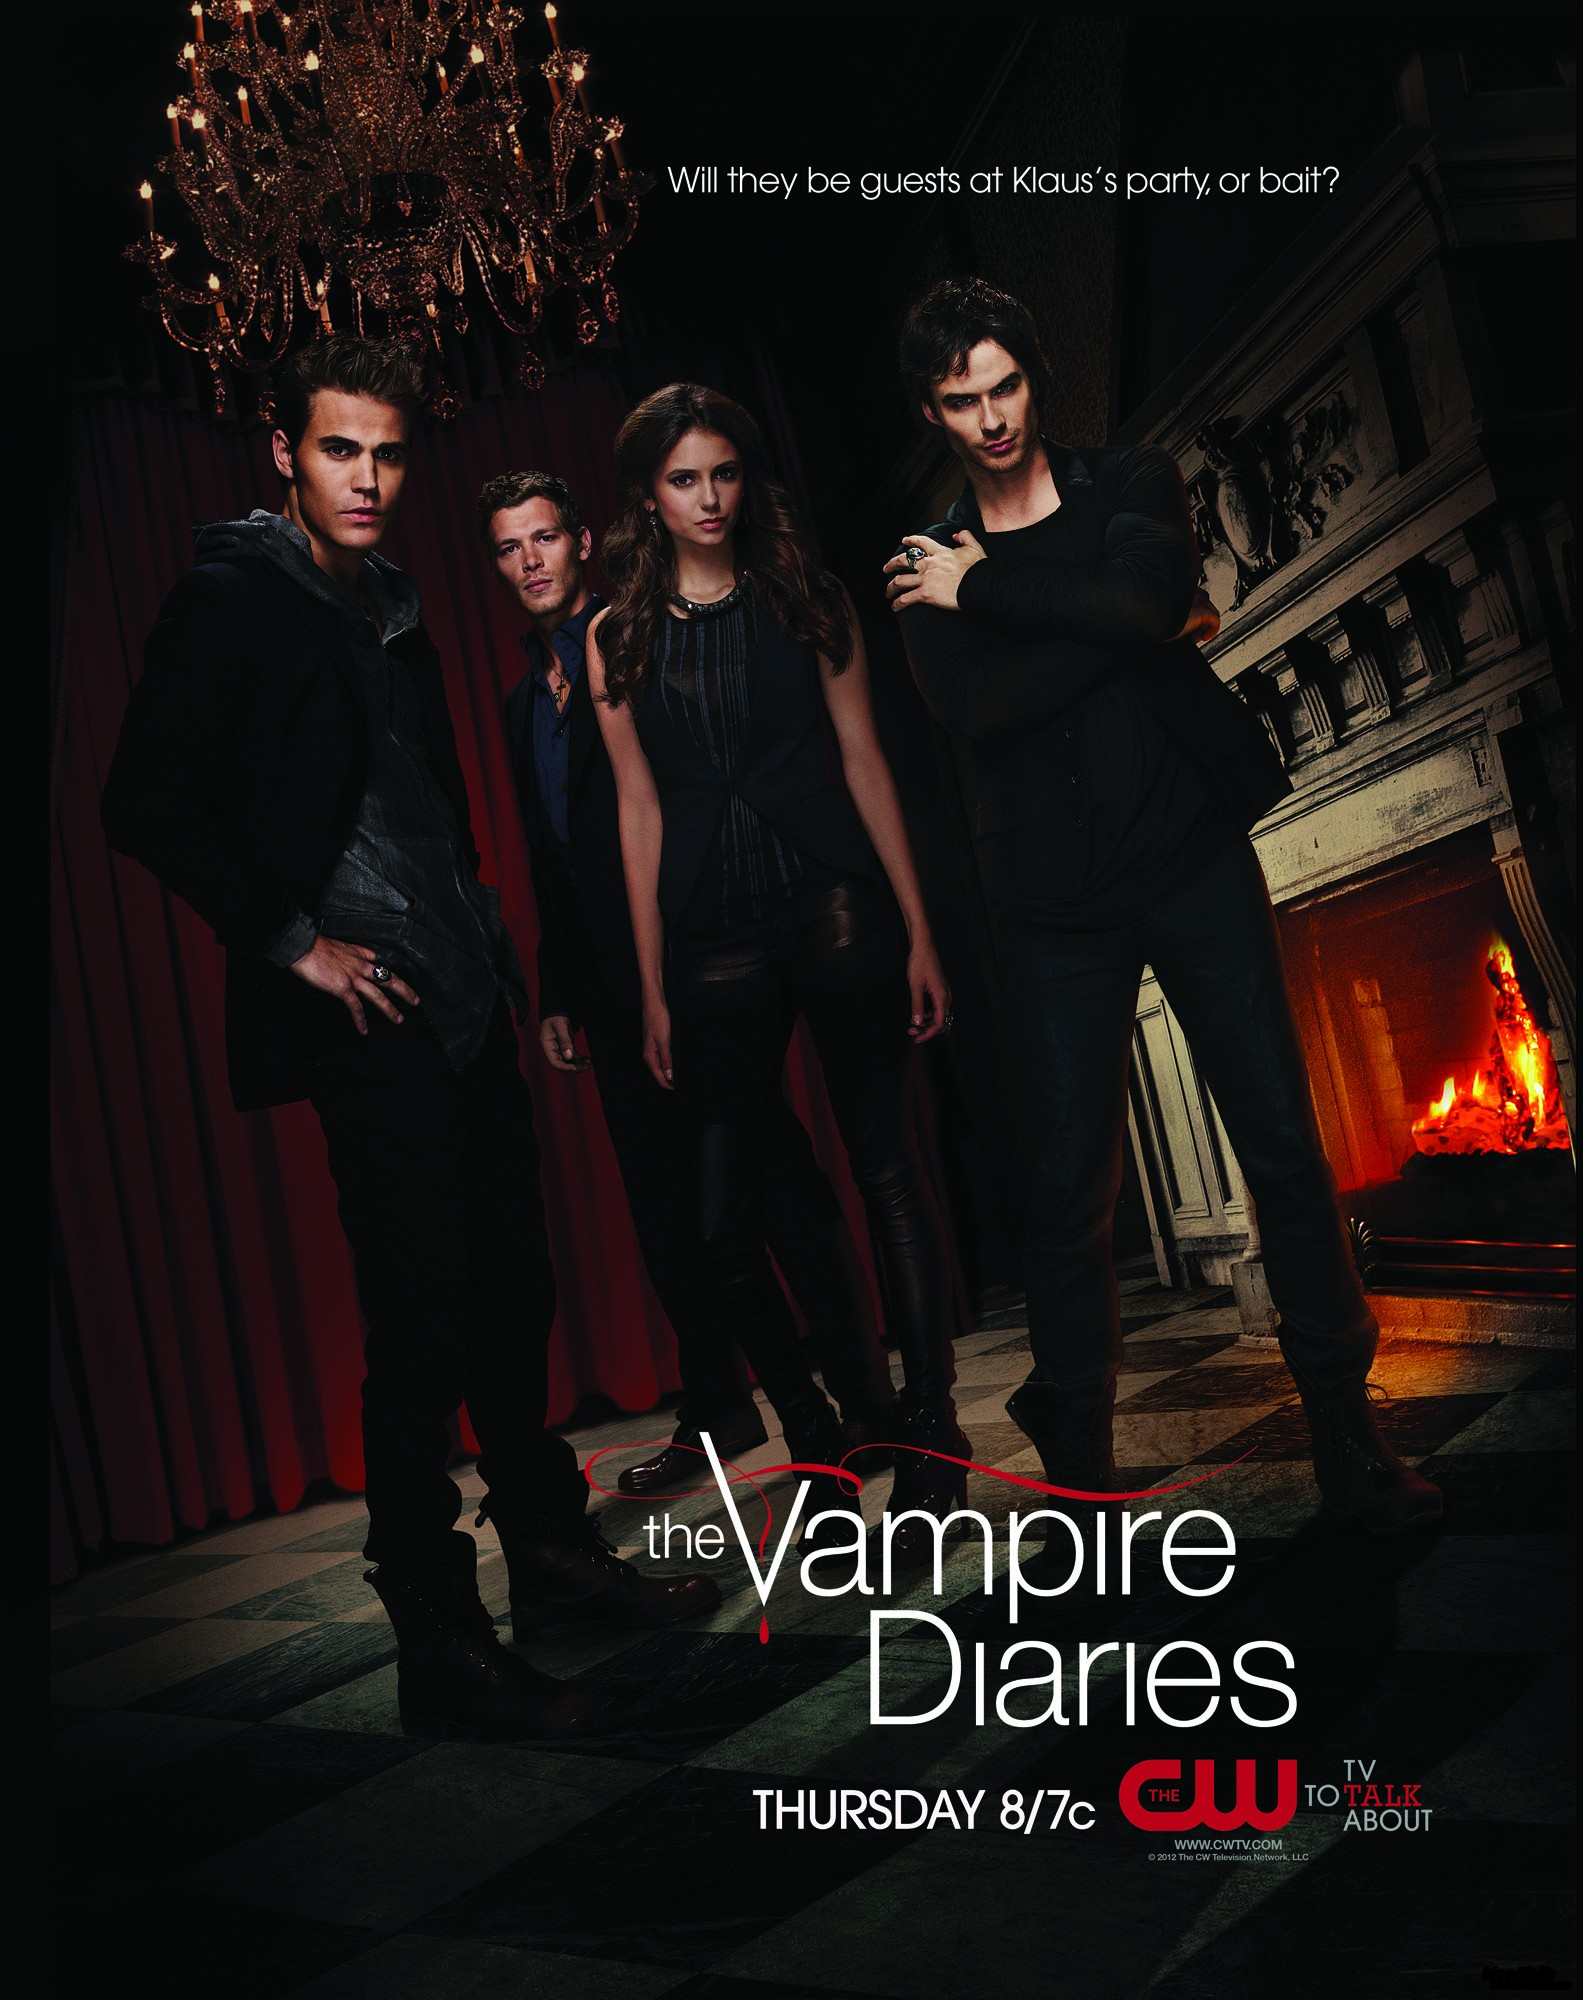 [MULTI] Vampire Diaries Saison 4 episode 3 [VOSTFR] [TVrip 720 ]